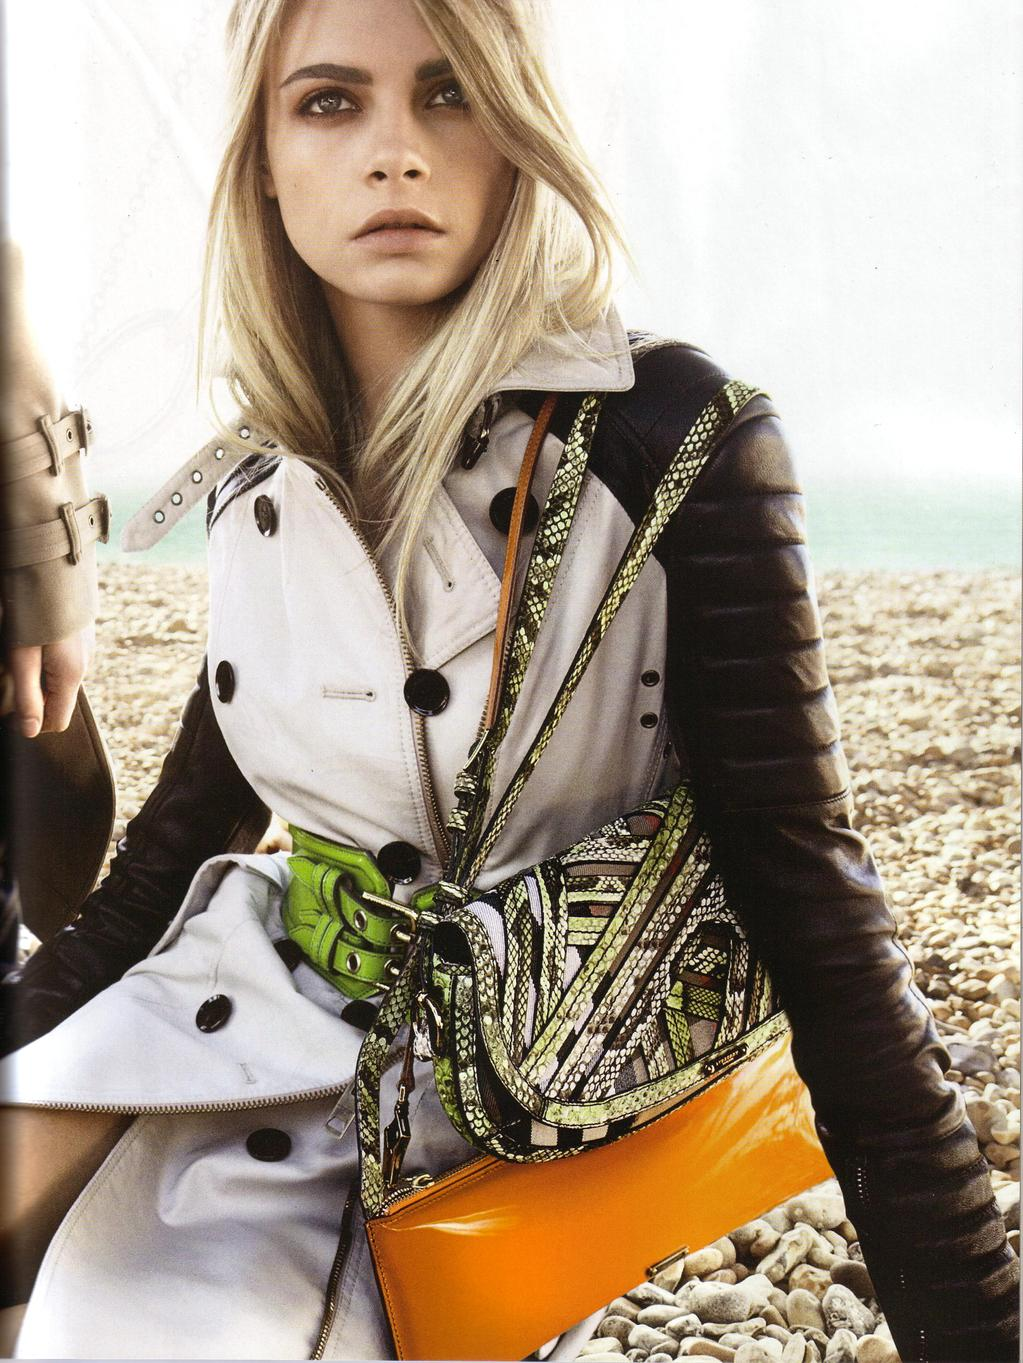 Fashion week Delevigne poppy for louis vuitton summer campaign for lady